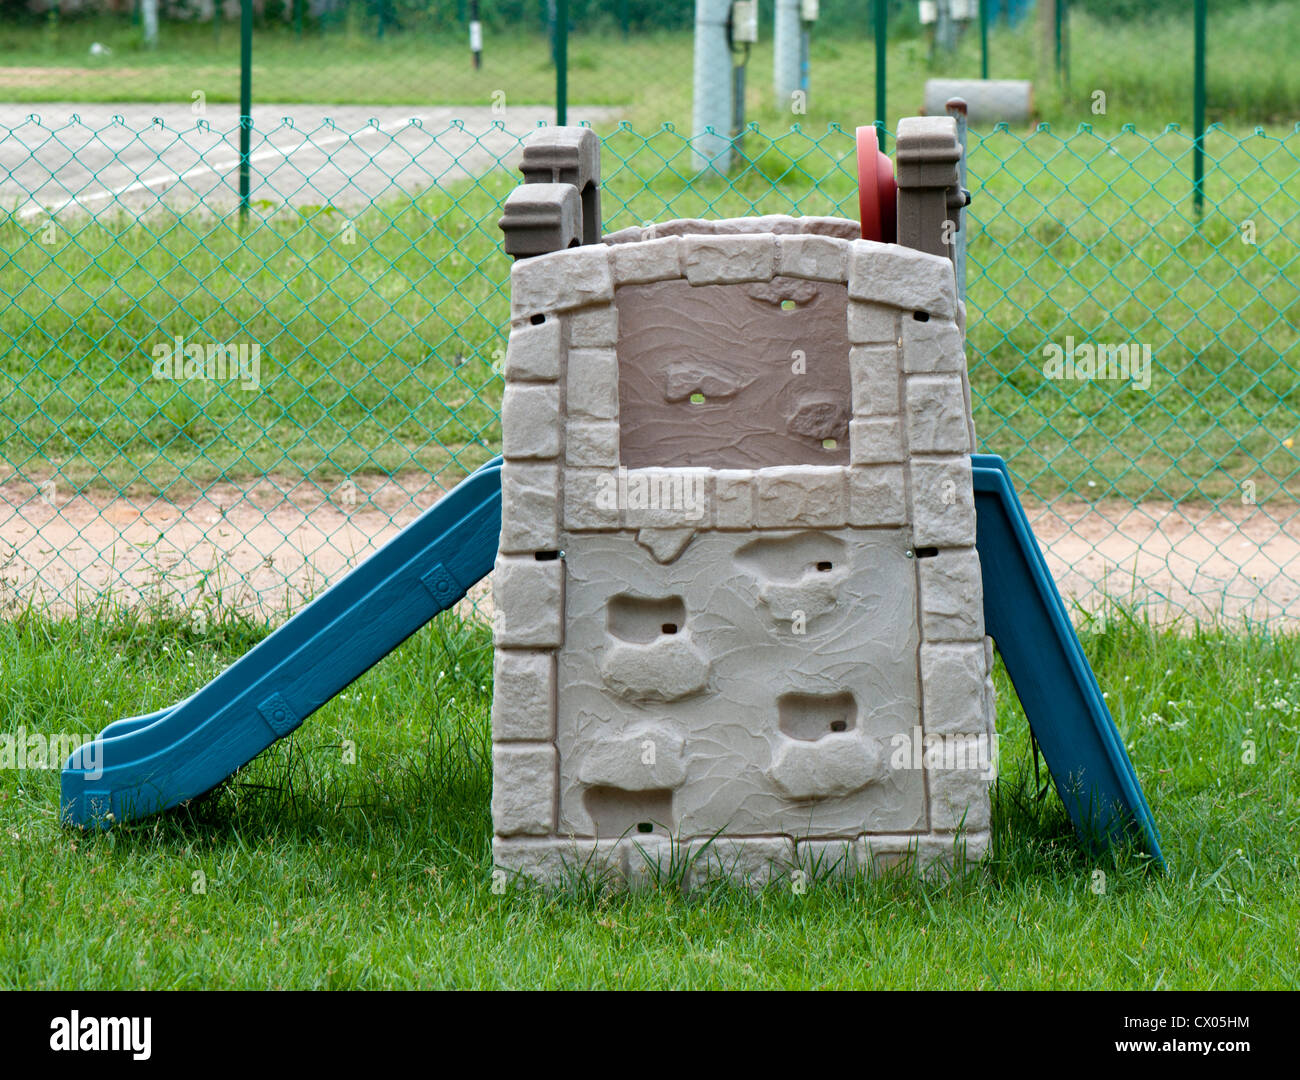 Toy house with slide - Stock Image